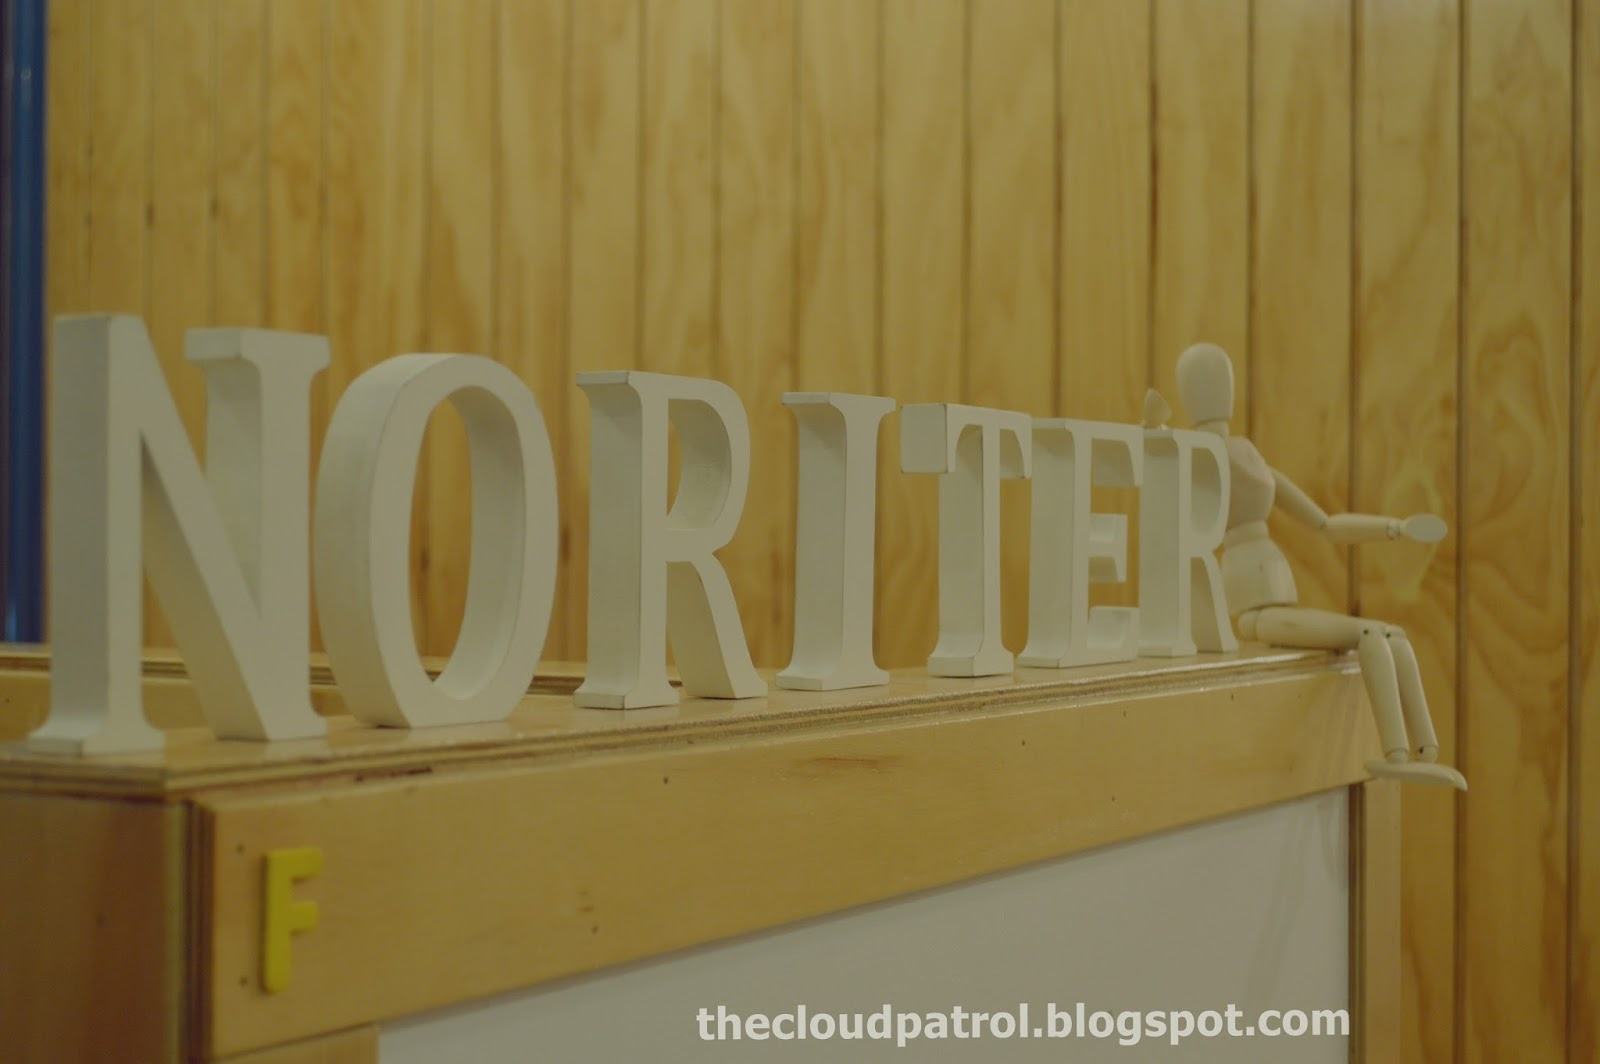 Korean Cafe, Cafe Noriter Cebu, Noriter, Cute, Quirky, Cebu City